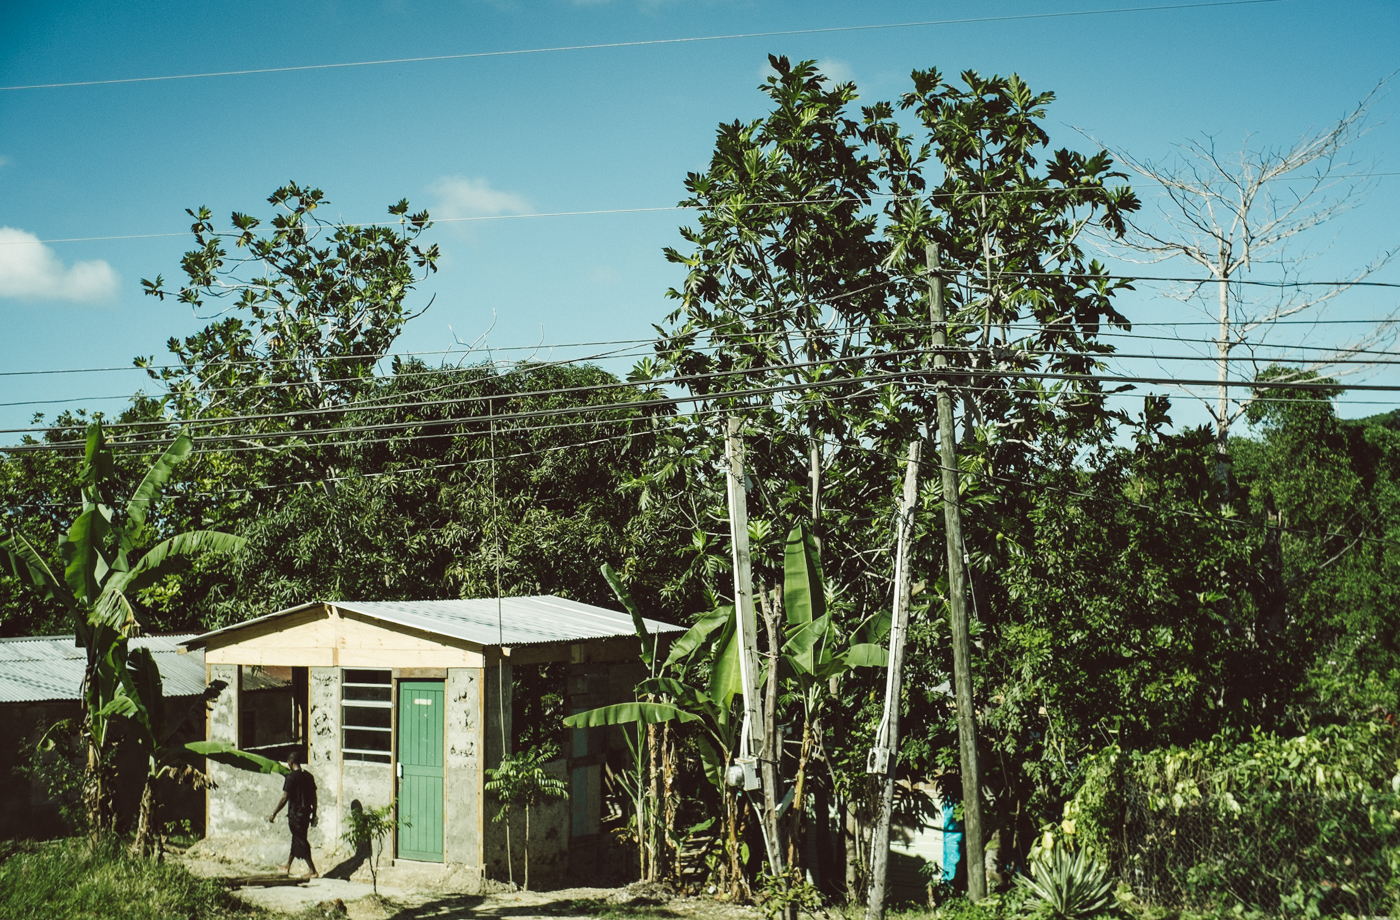 Roadside Jamaica